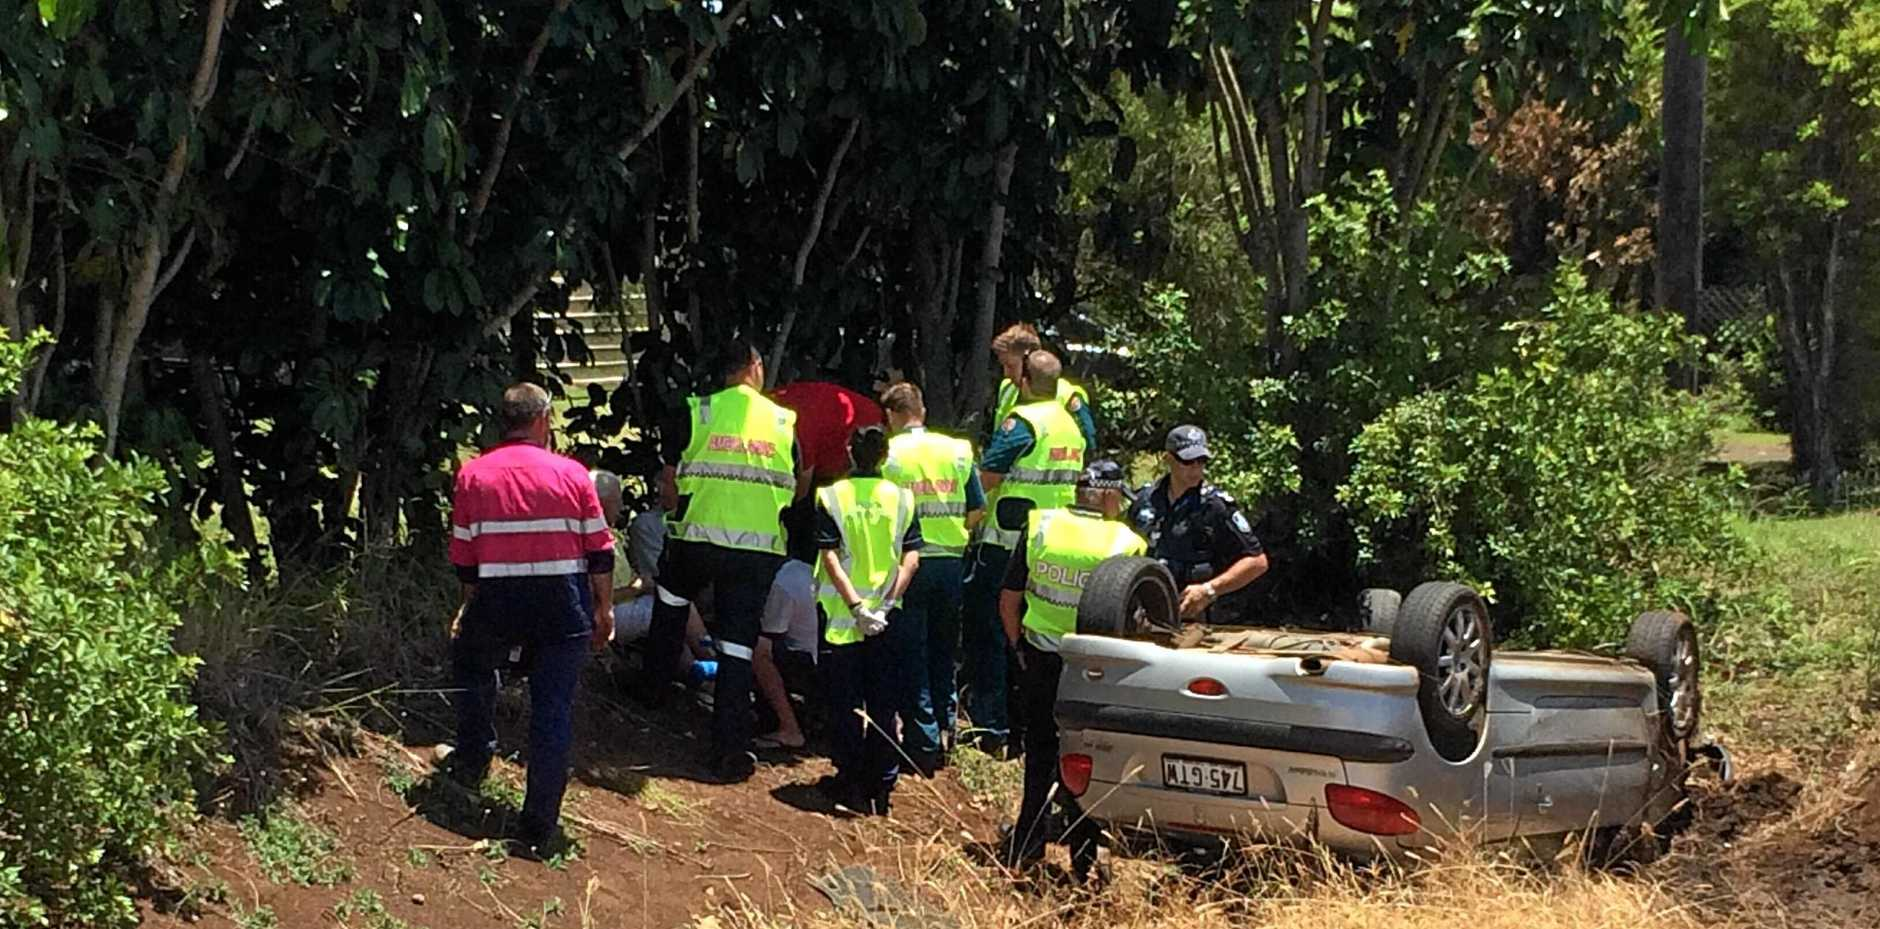 ROLLOVER: An elderly couple are being treated by paramedics are rolling their car down an embankment.